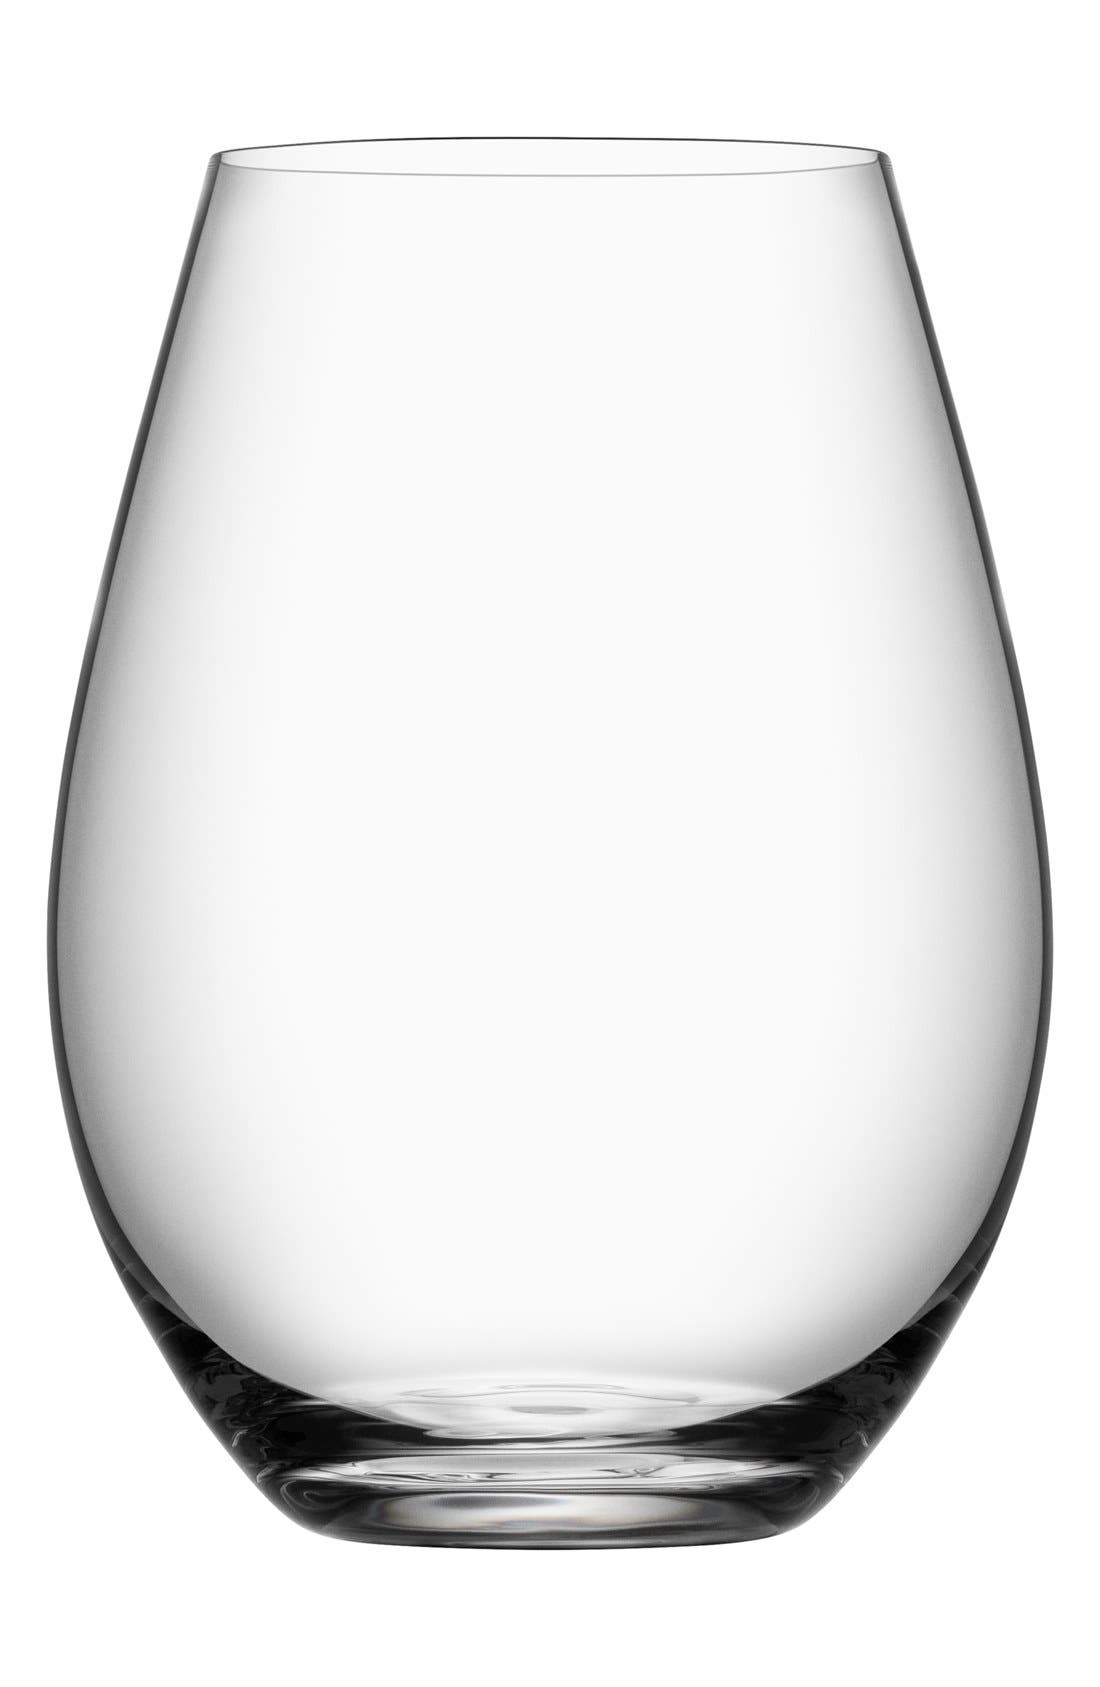 'More' Stemless Wine Glasses,                             Main thumbnail 1, color,                             White